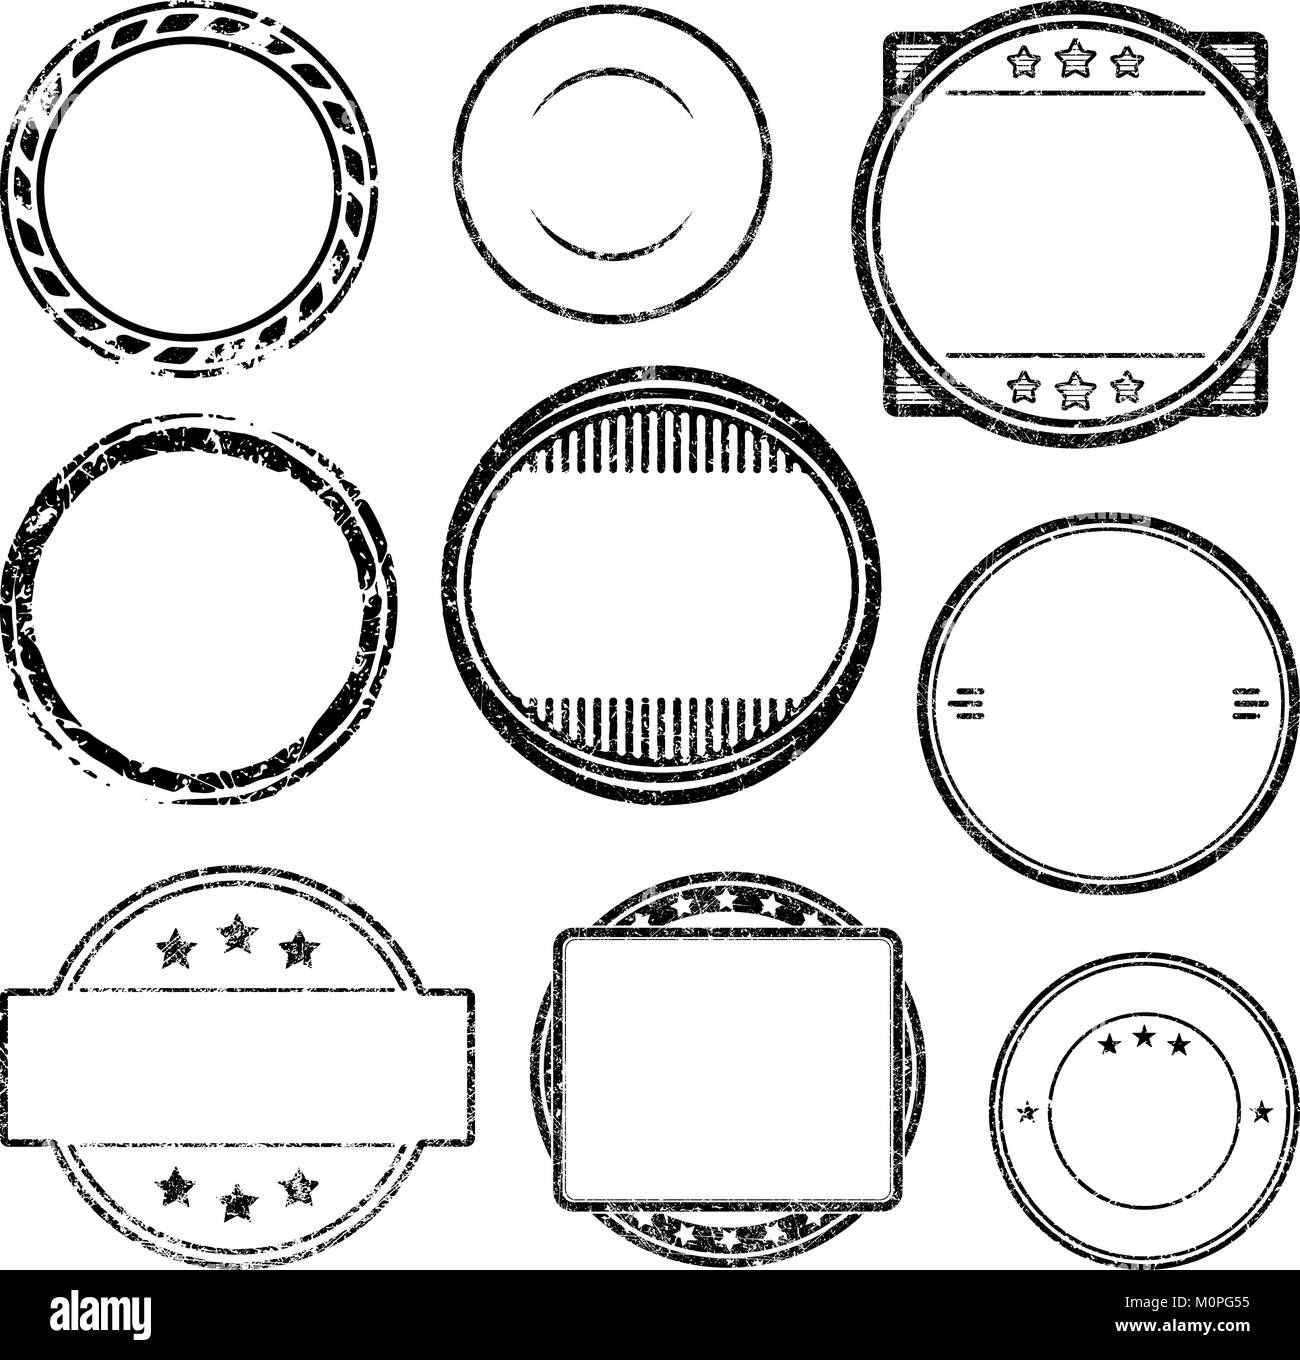 big set of grunge templates for rubber stamps stock vector art